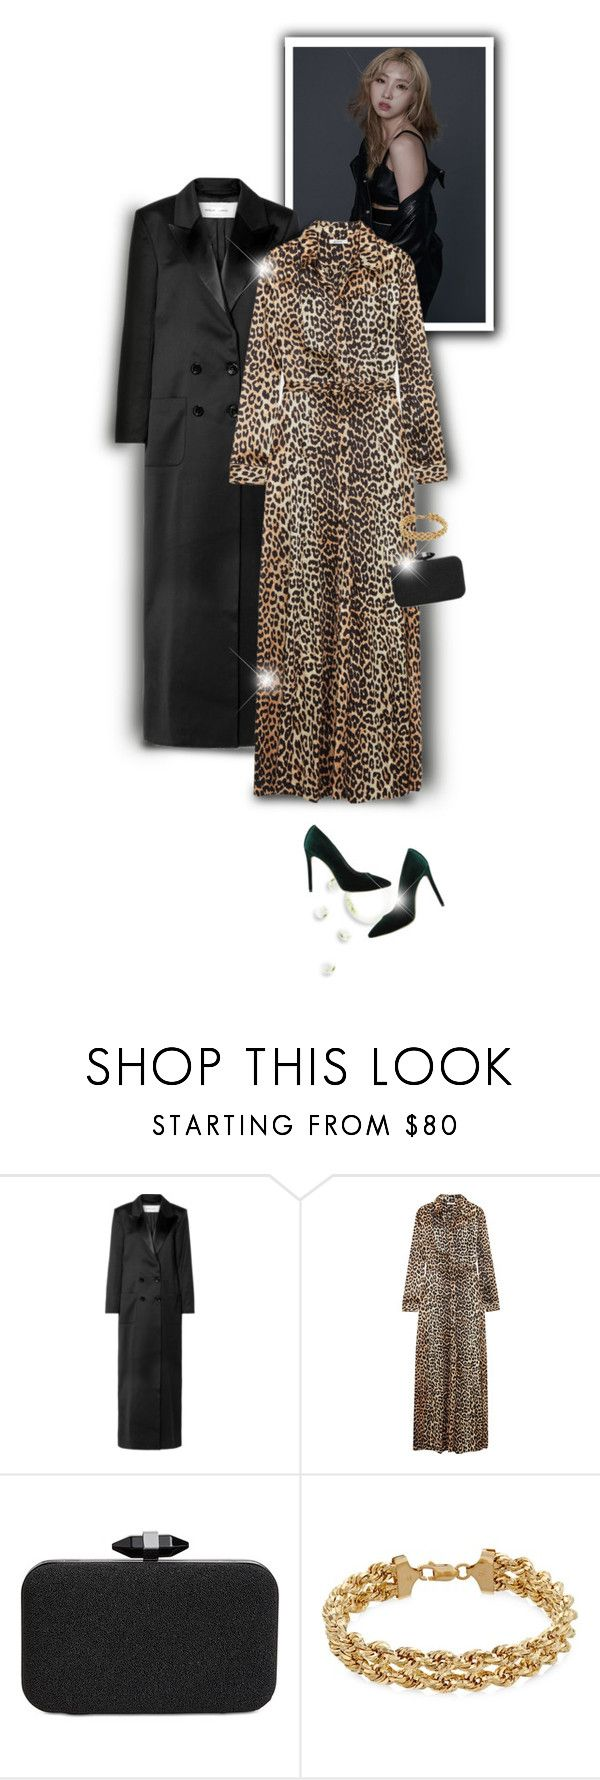 """""""Leopard Maxi Dress"""" by melanie-avni ❤ liked on Polyvore featuring Marques'Almeida, Ganni, INC International Concepts and Marc Ellis"""